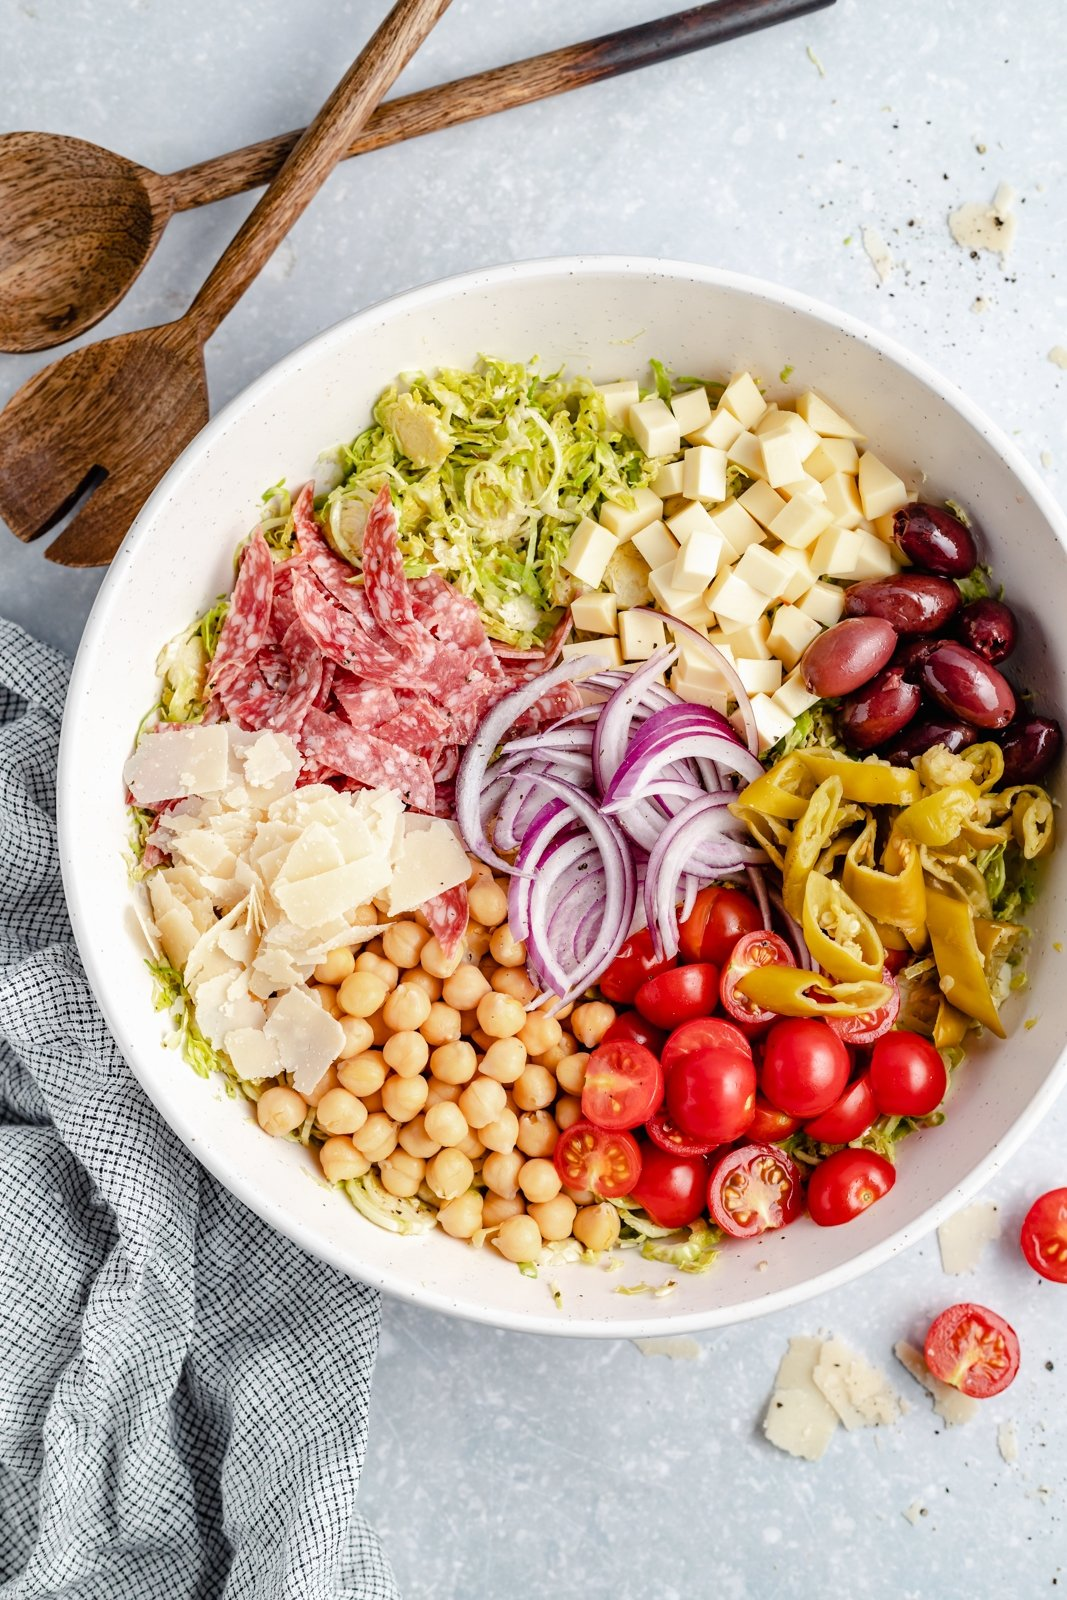 ingredients for Italian chopped salad in a bowl